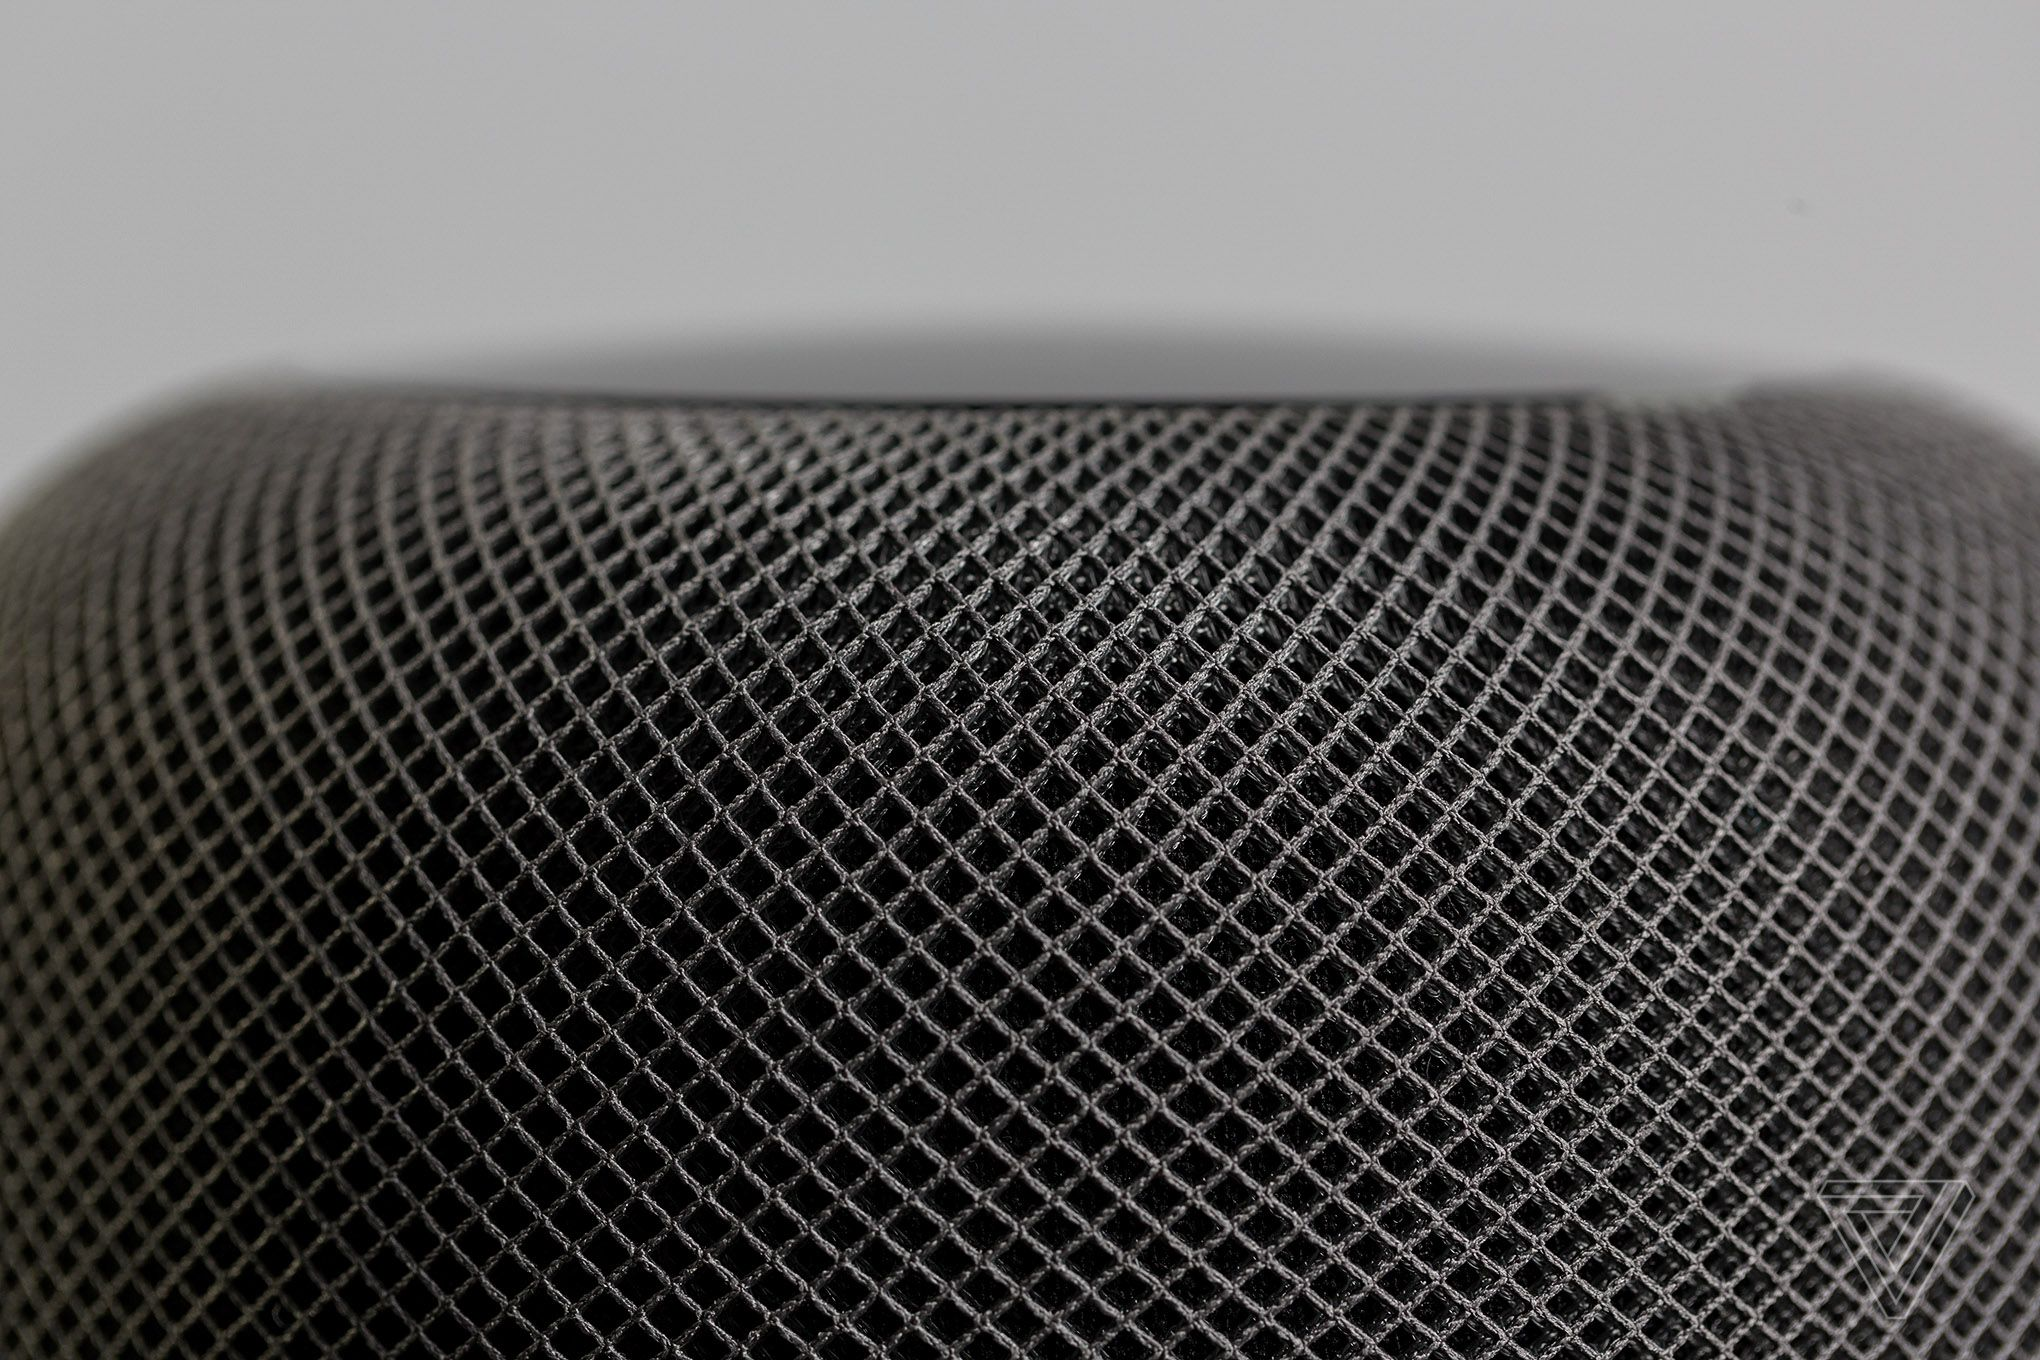 homepod grille